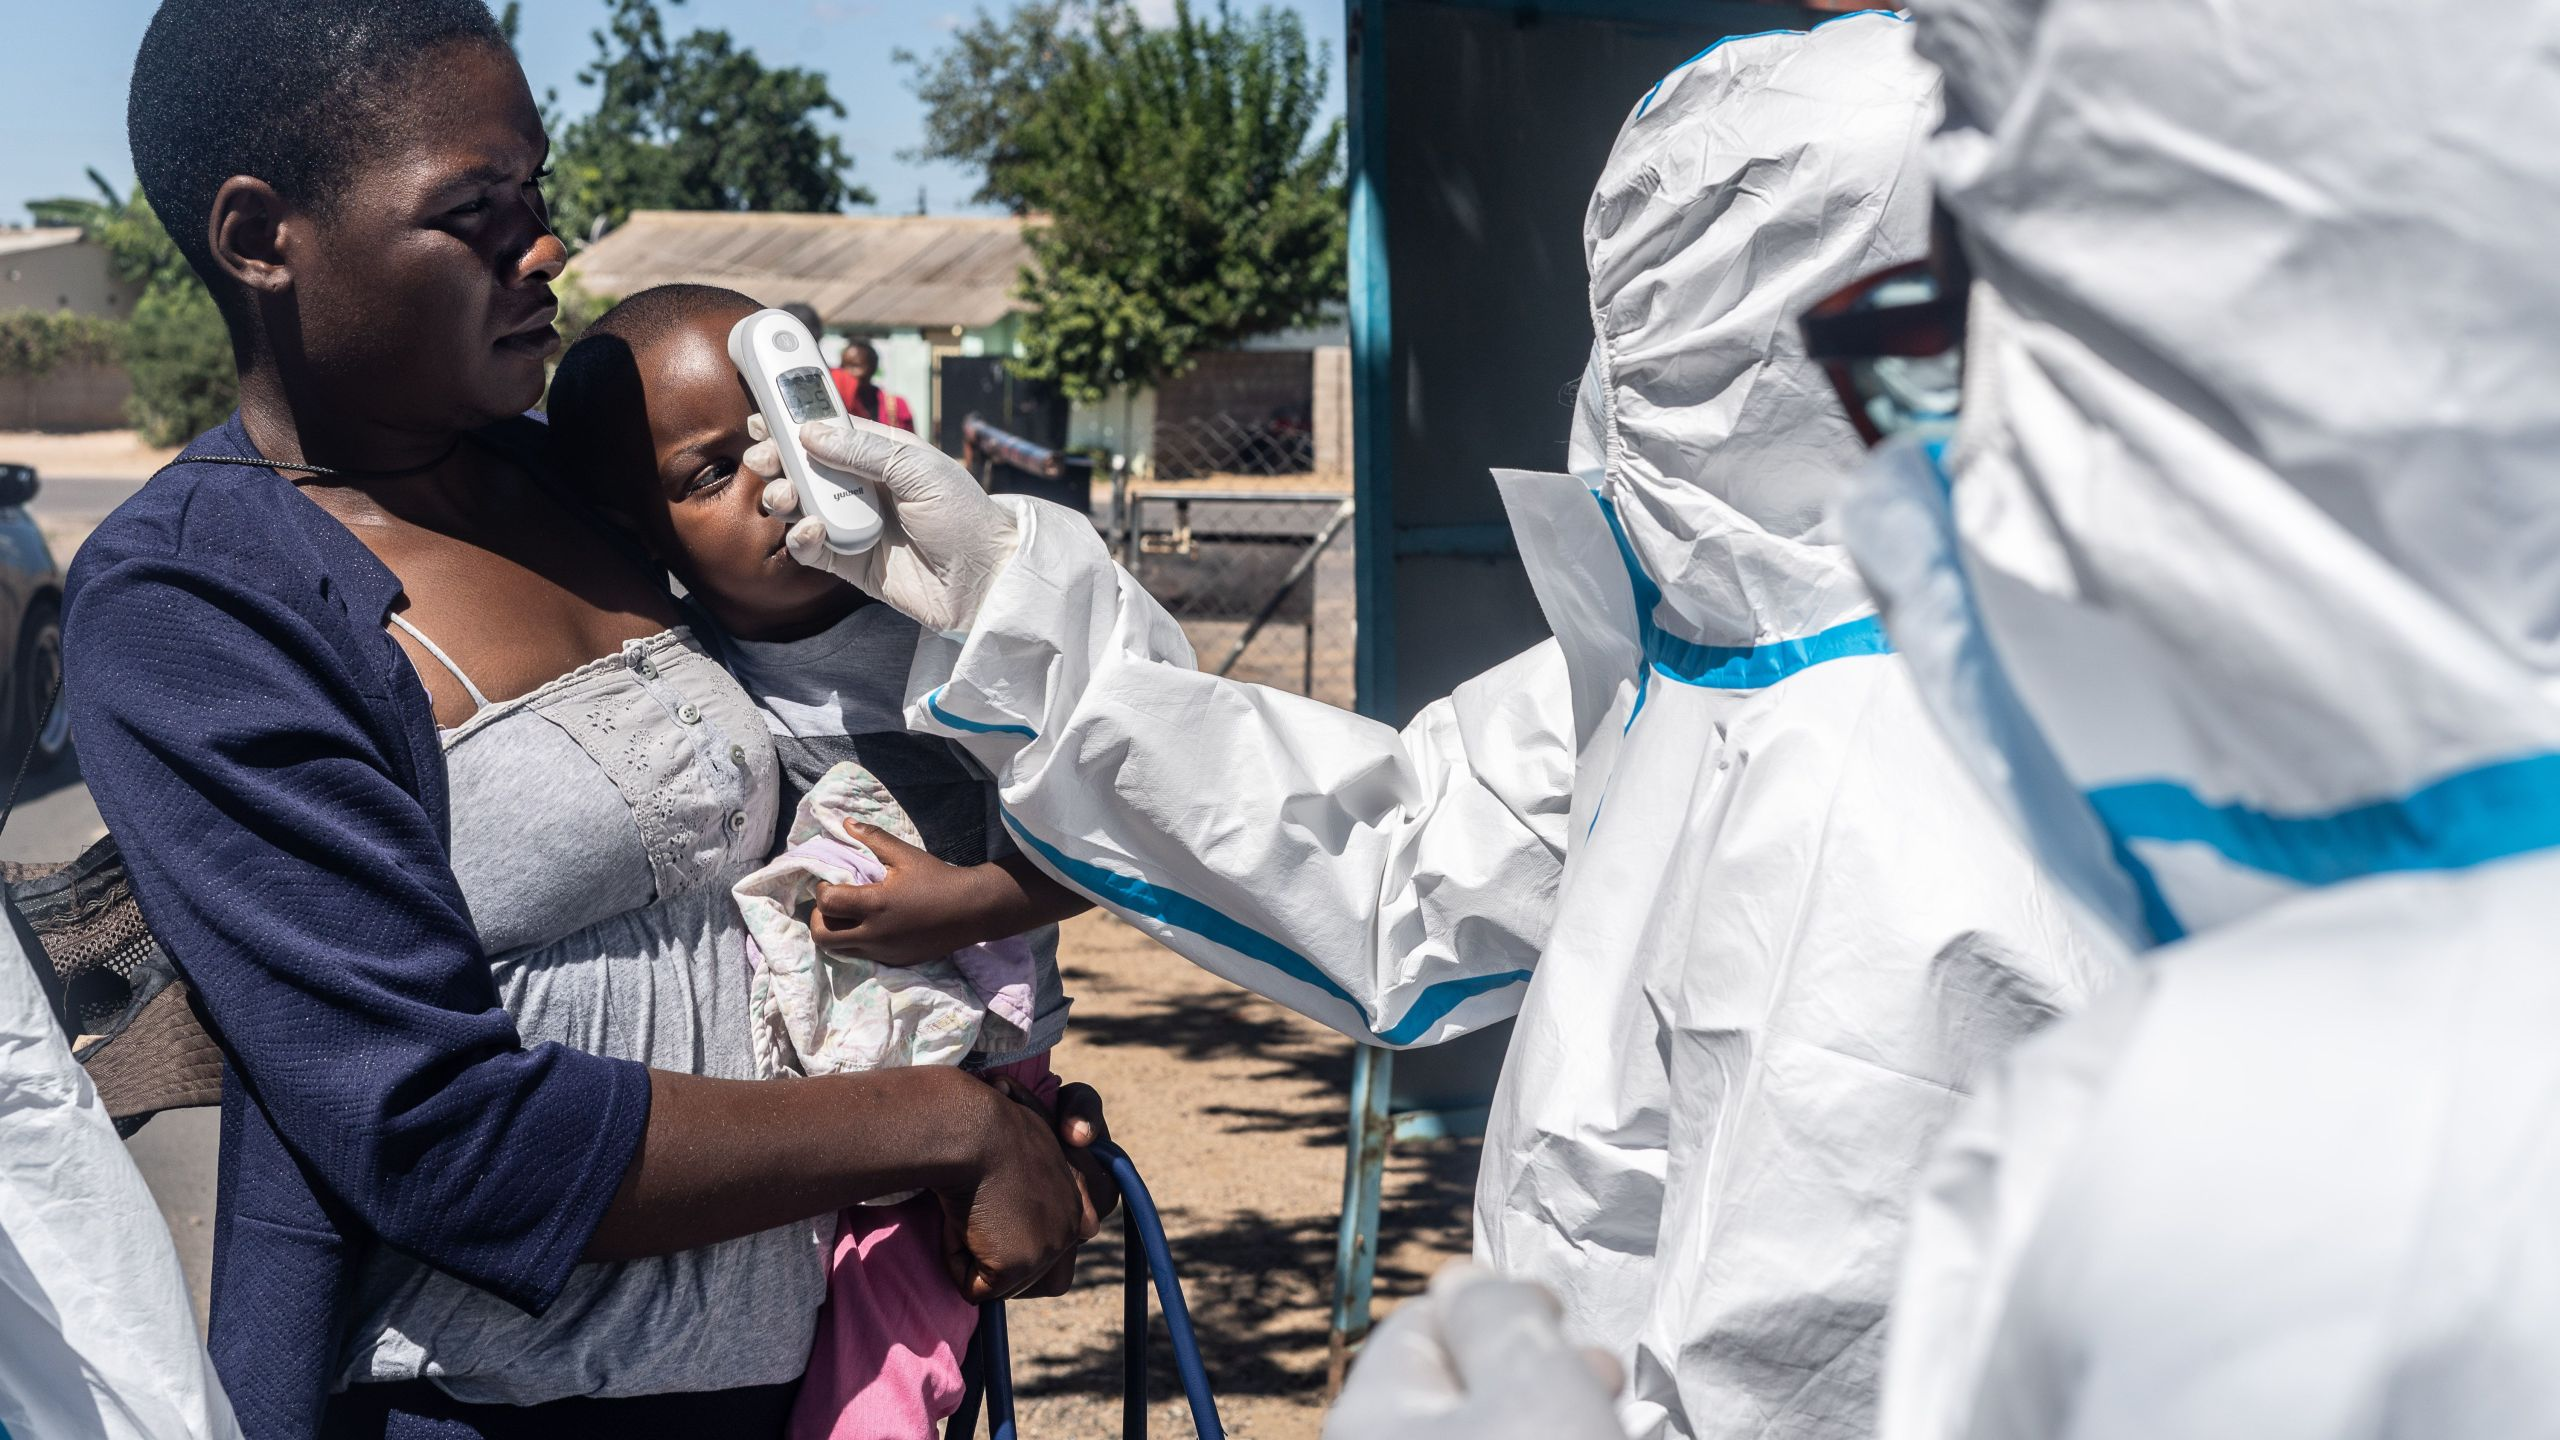 Medical personnel check temperatures of patients visiting Mpilo Hospital in Bulawayo, Zimbabwe on April 25, 2020. The number of cases of coronavirus in Africa is currently low compared to the rest of the planet: nearly 28,000 on the continent against more than 2.7 million worldwide, according to an AFP count. (ZINYANGE AUNTONY/AFP via Getty Images)